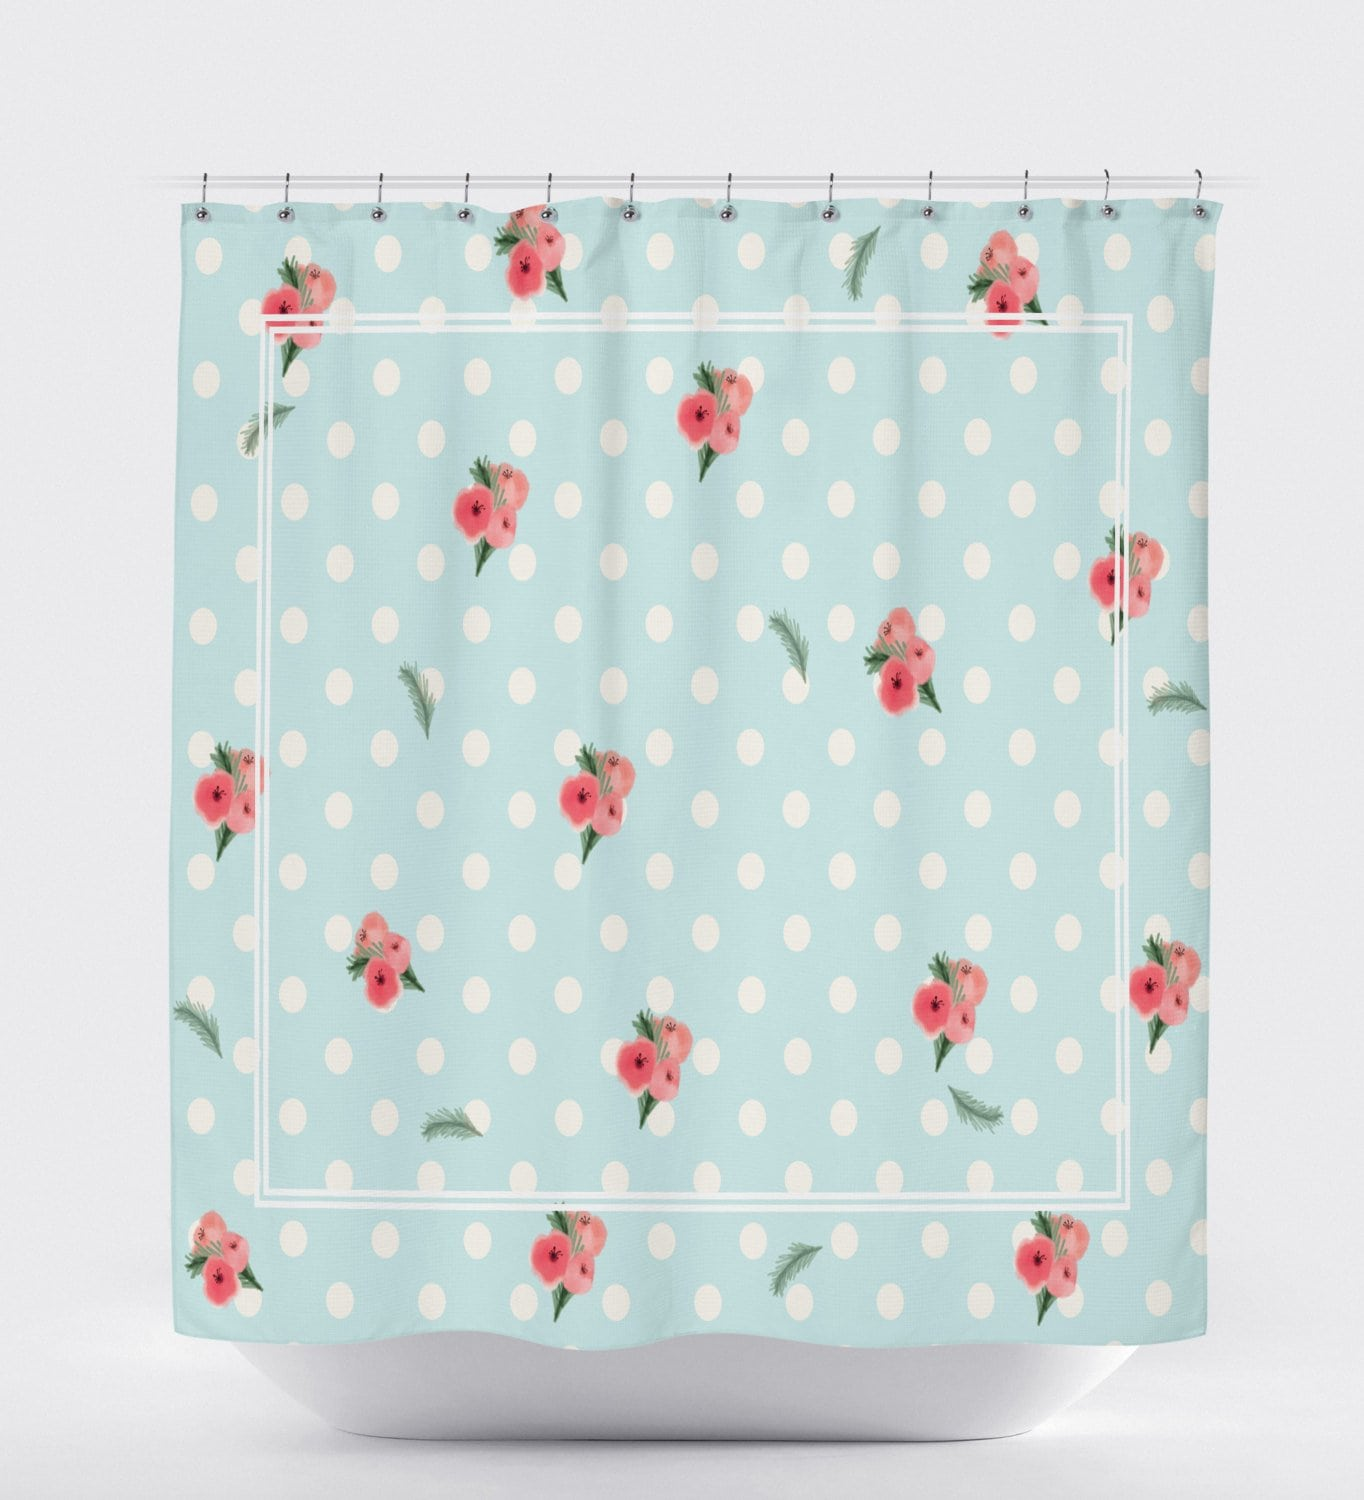 Polka Dot Shower Curtain, Floral Shower Curtain, Pattern Shower Curtain, Bathroom Accessories